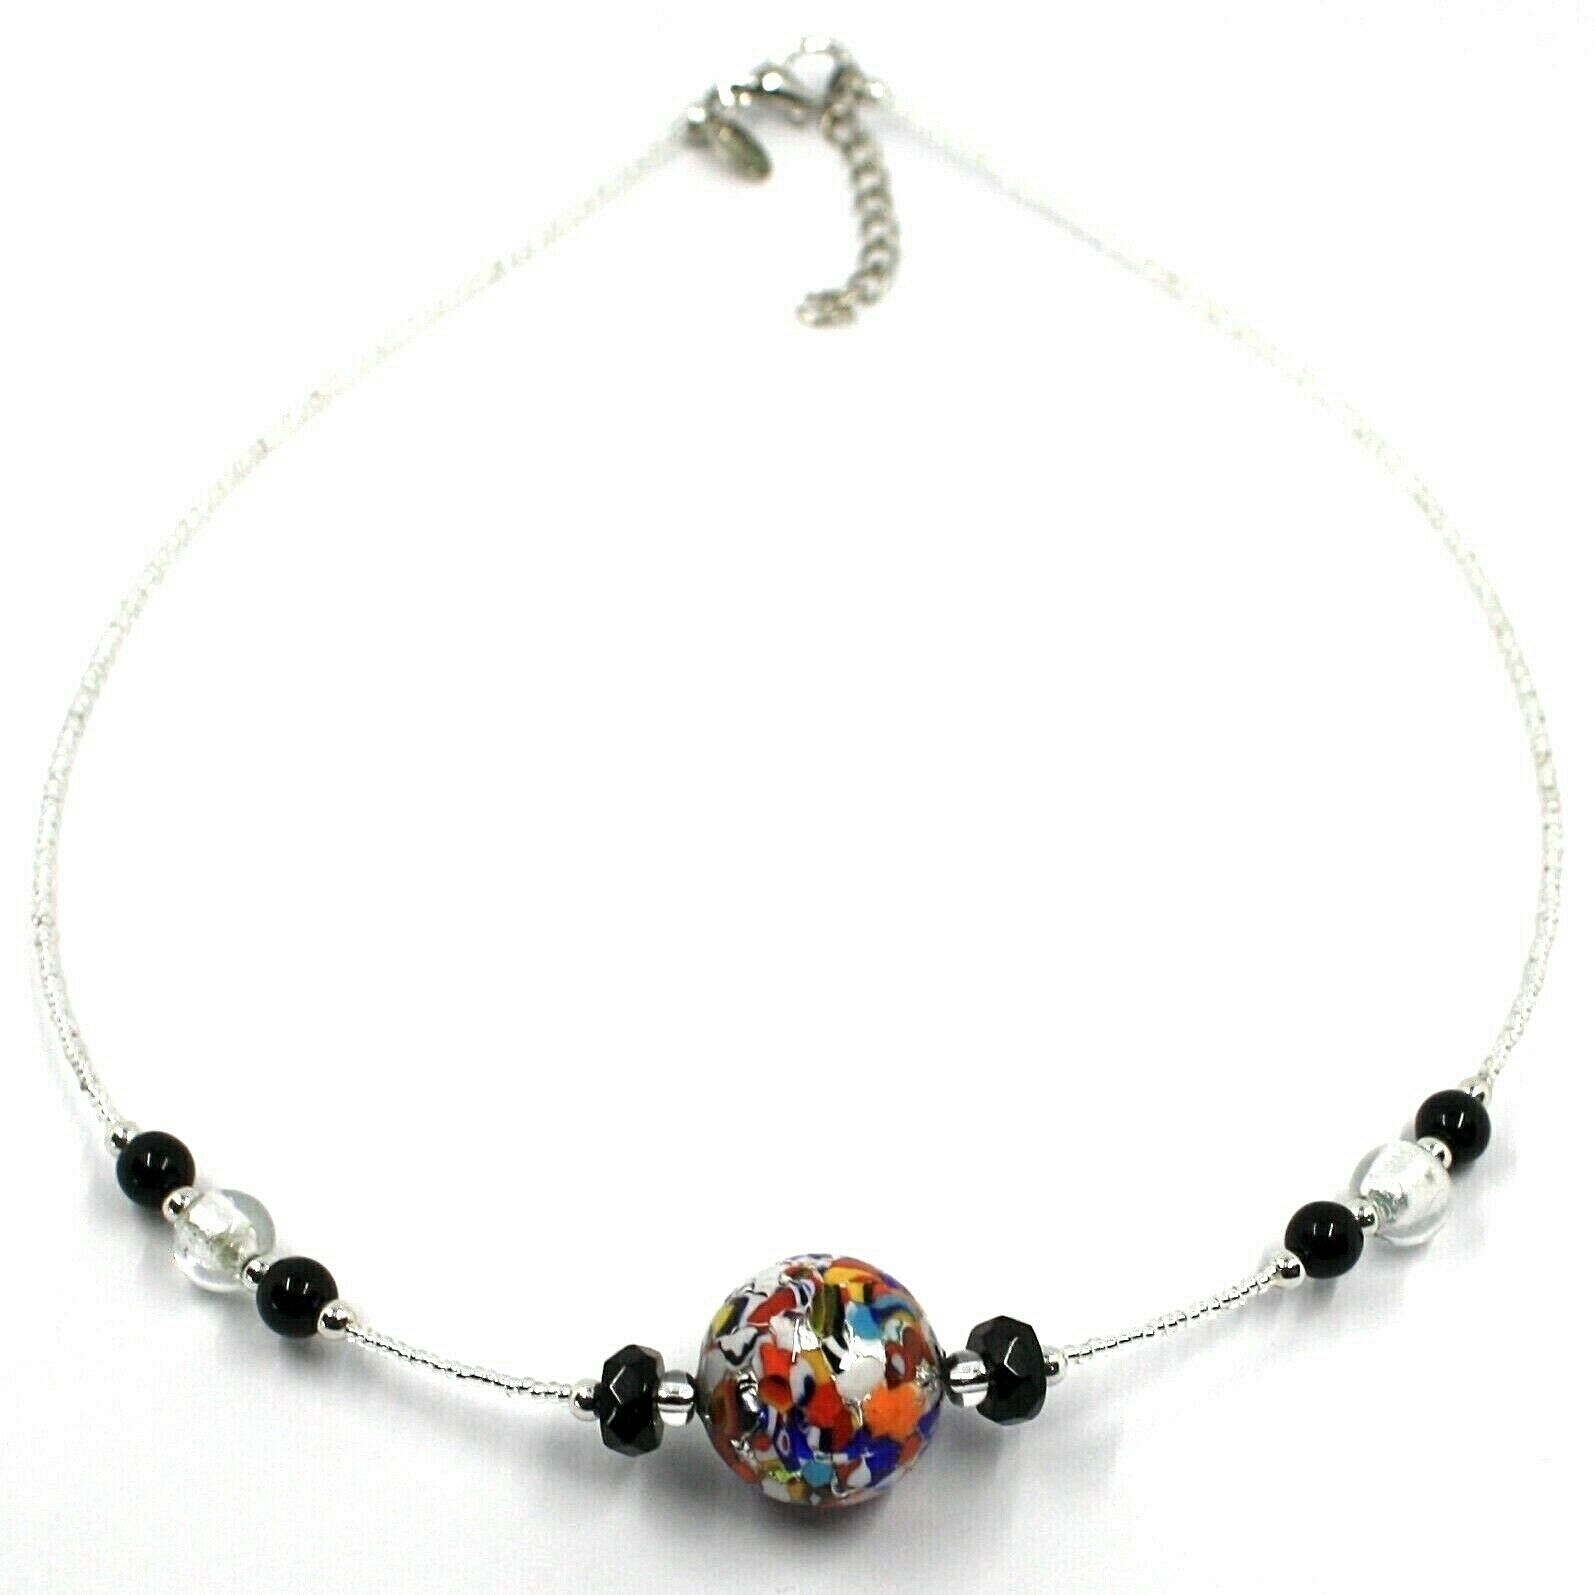 NECKLACE MACULATE MULTI COLOR MURANO GLASS BIG SPHERE, SILVER LEAF, ITALY MADE